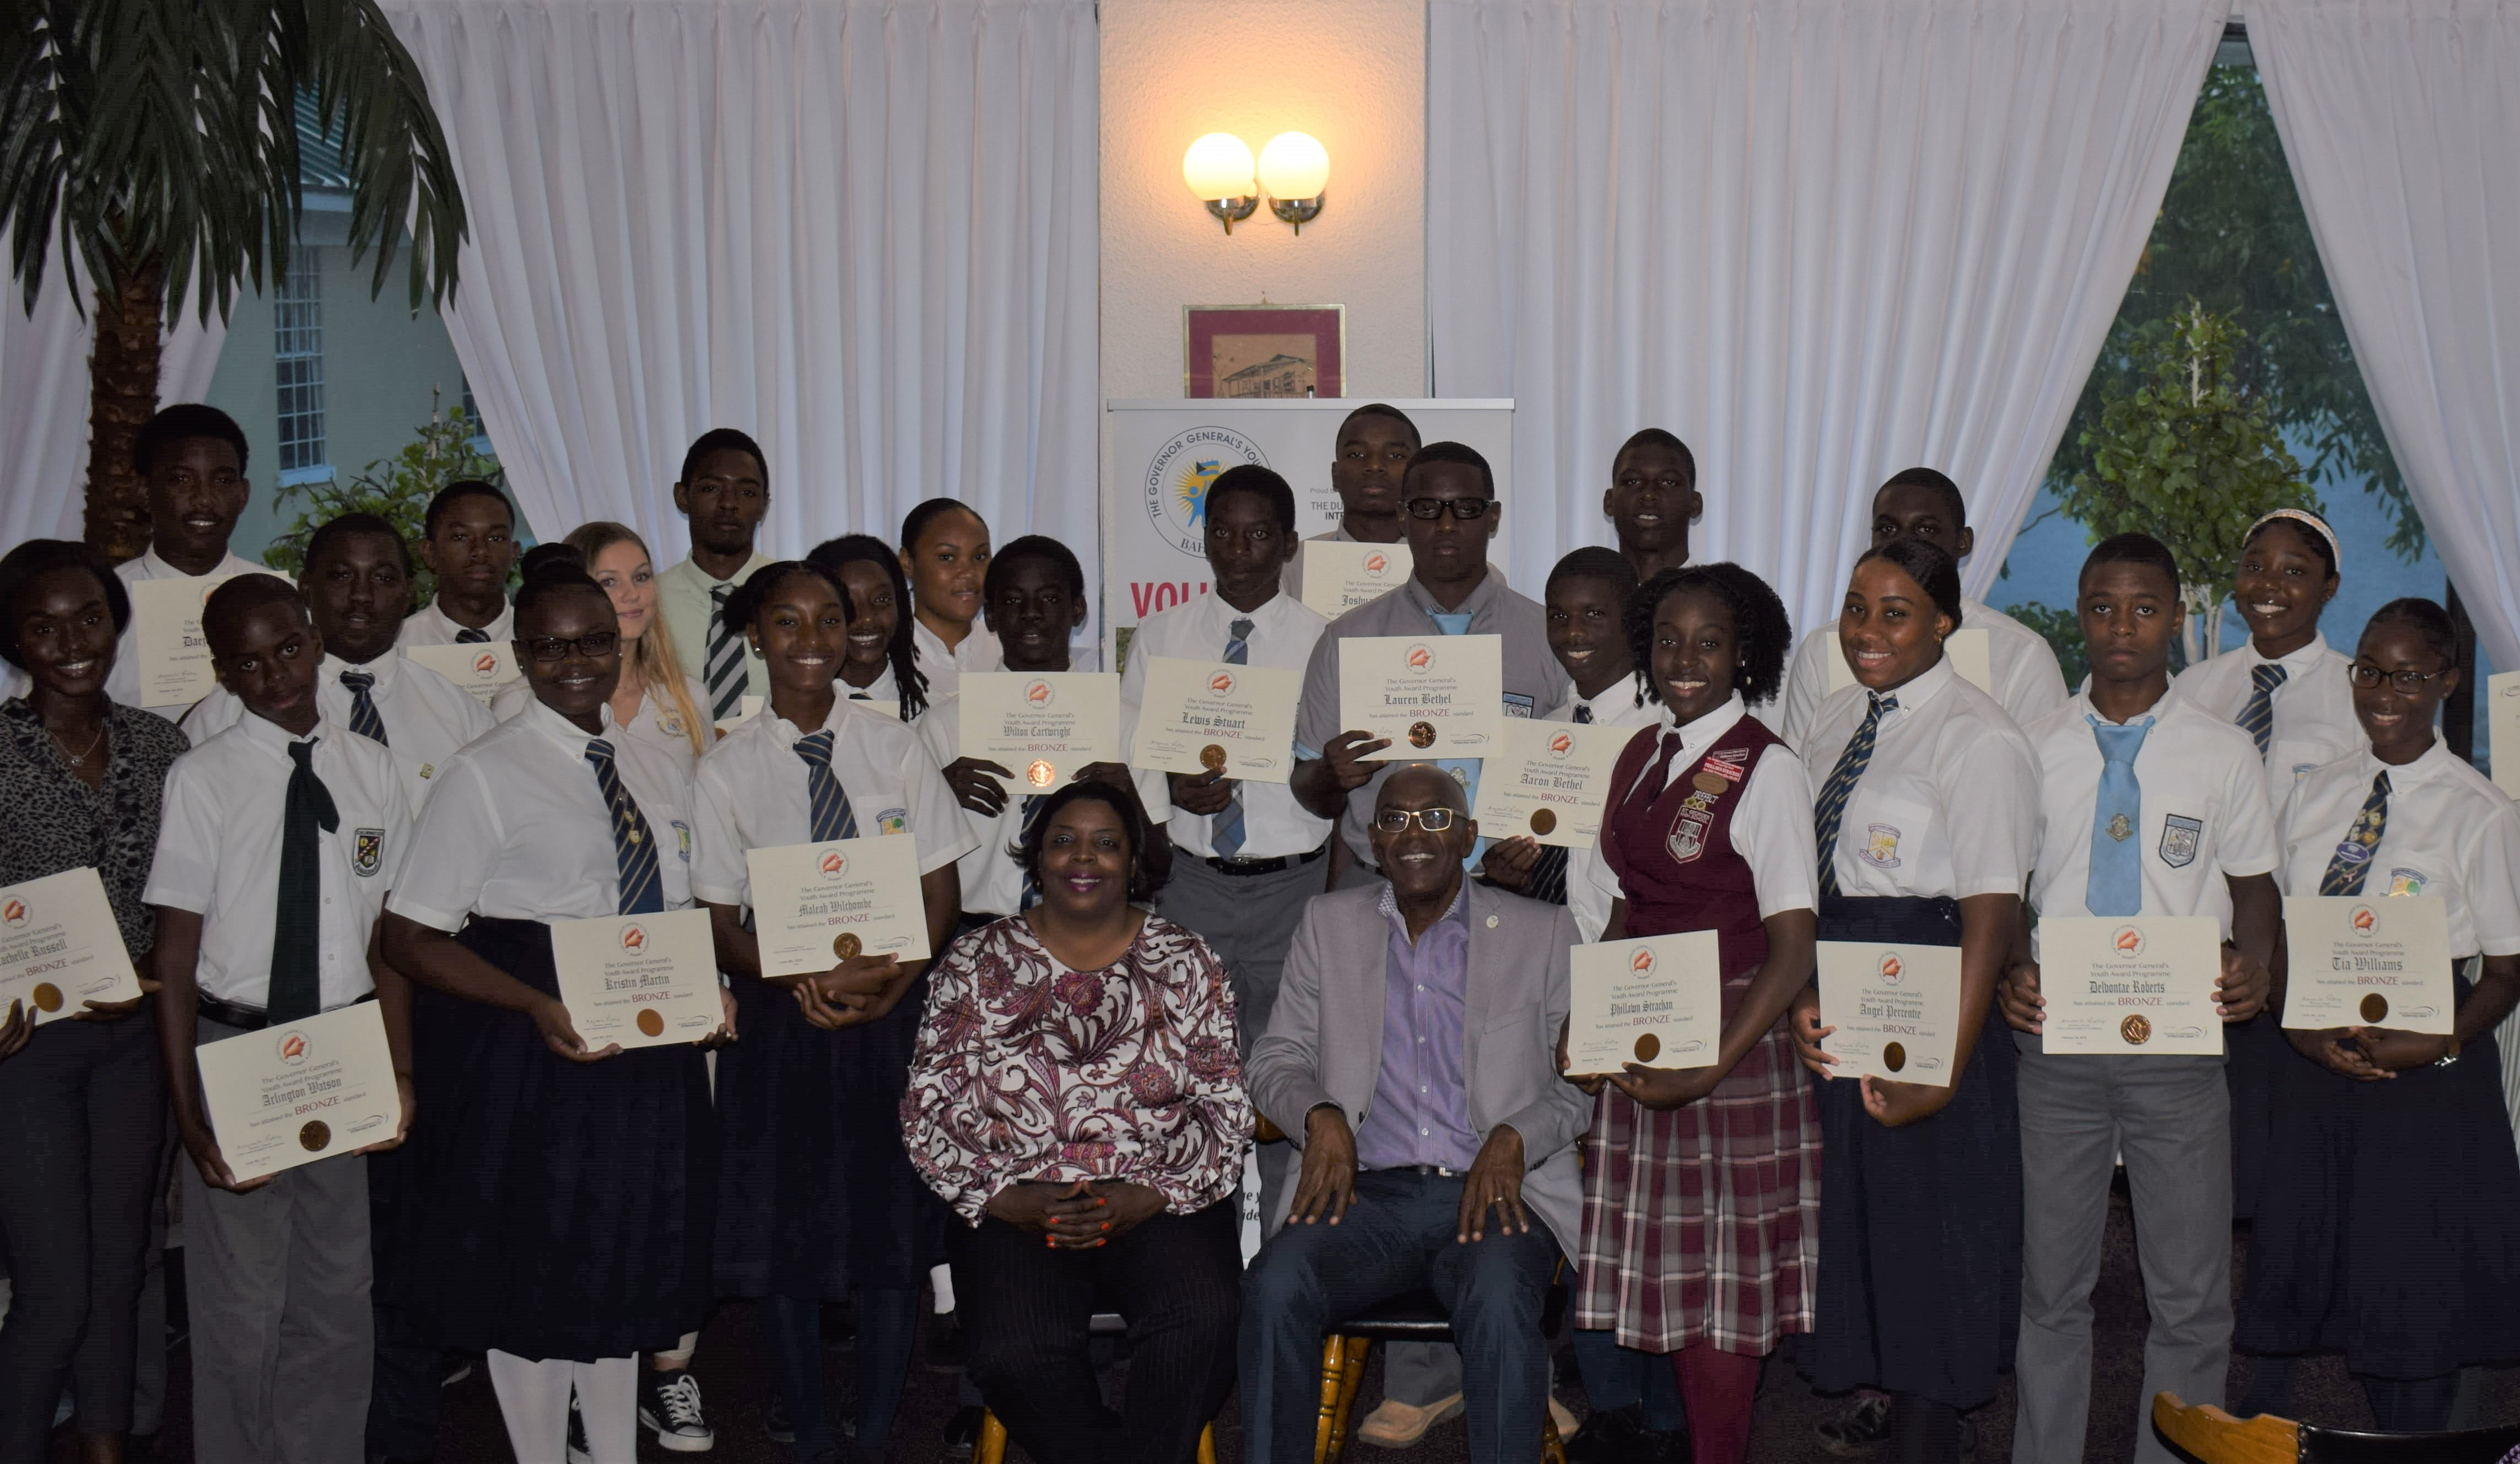 58 GB Youths shine as beacon of excellence with GGYA awards